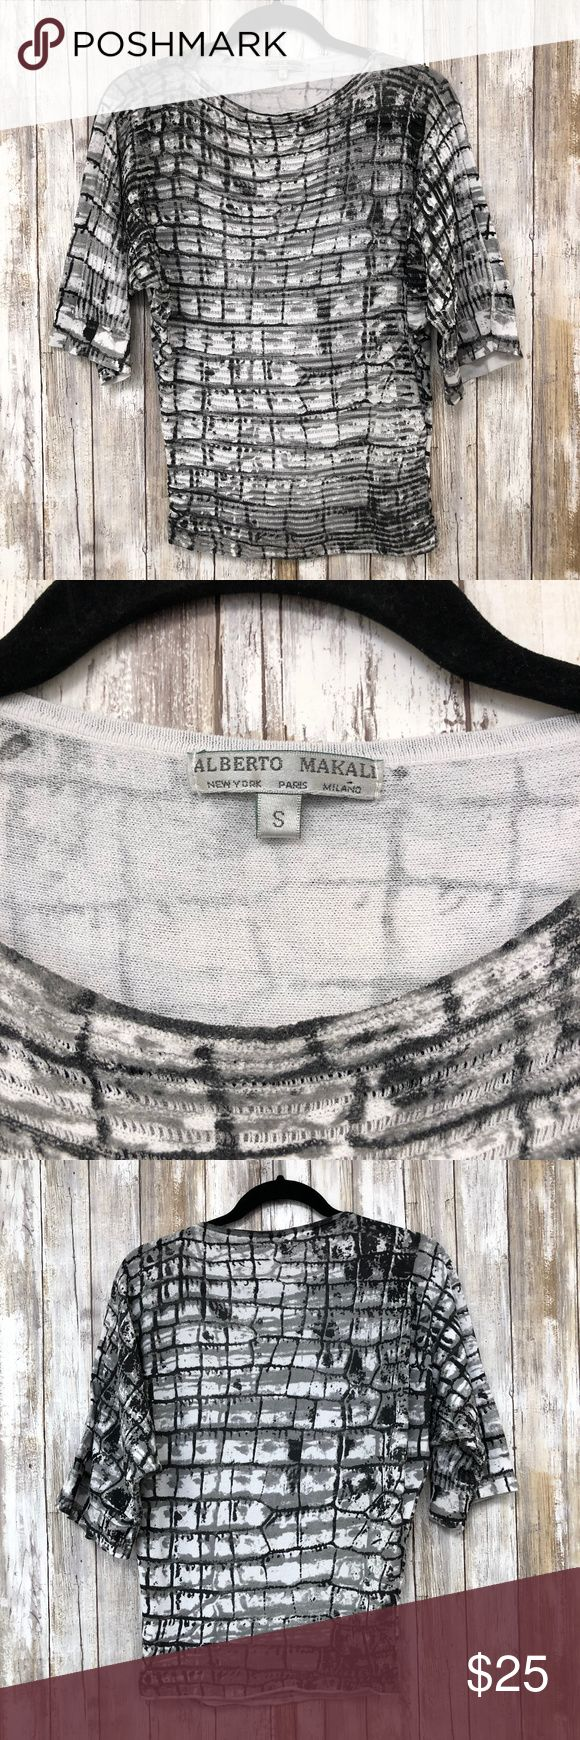 Alberto Makali S Black and White Short Sleeve Top Black and white short sleeve top.  Funky print makes for a gorgeous casual top. Alberto Makali Tops